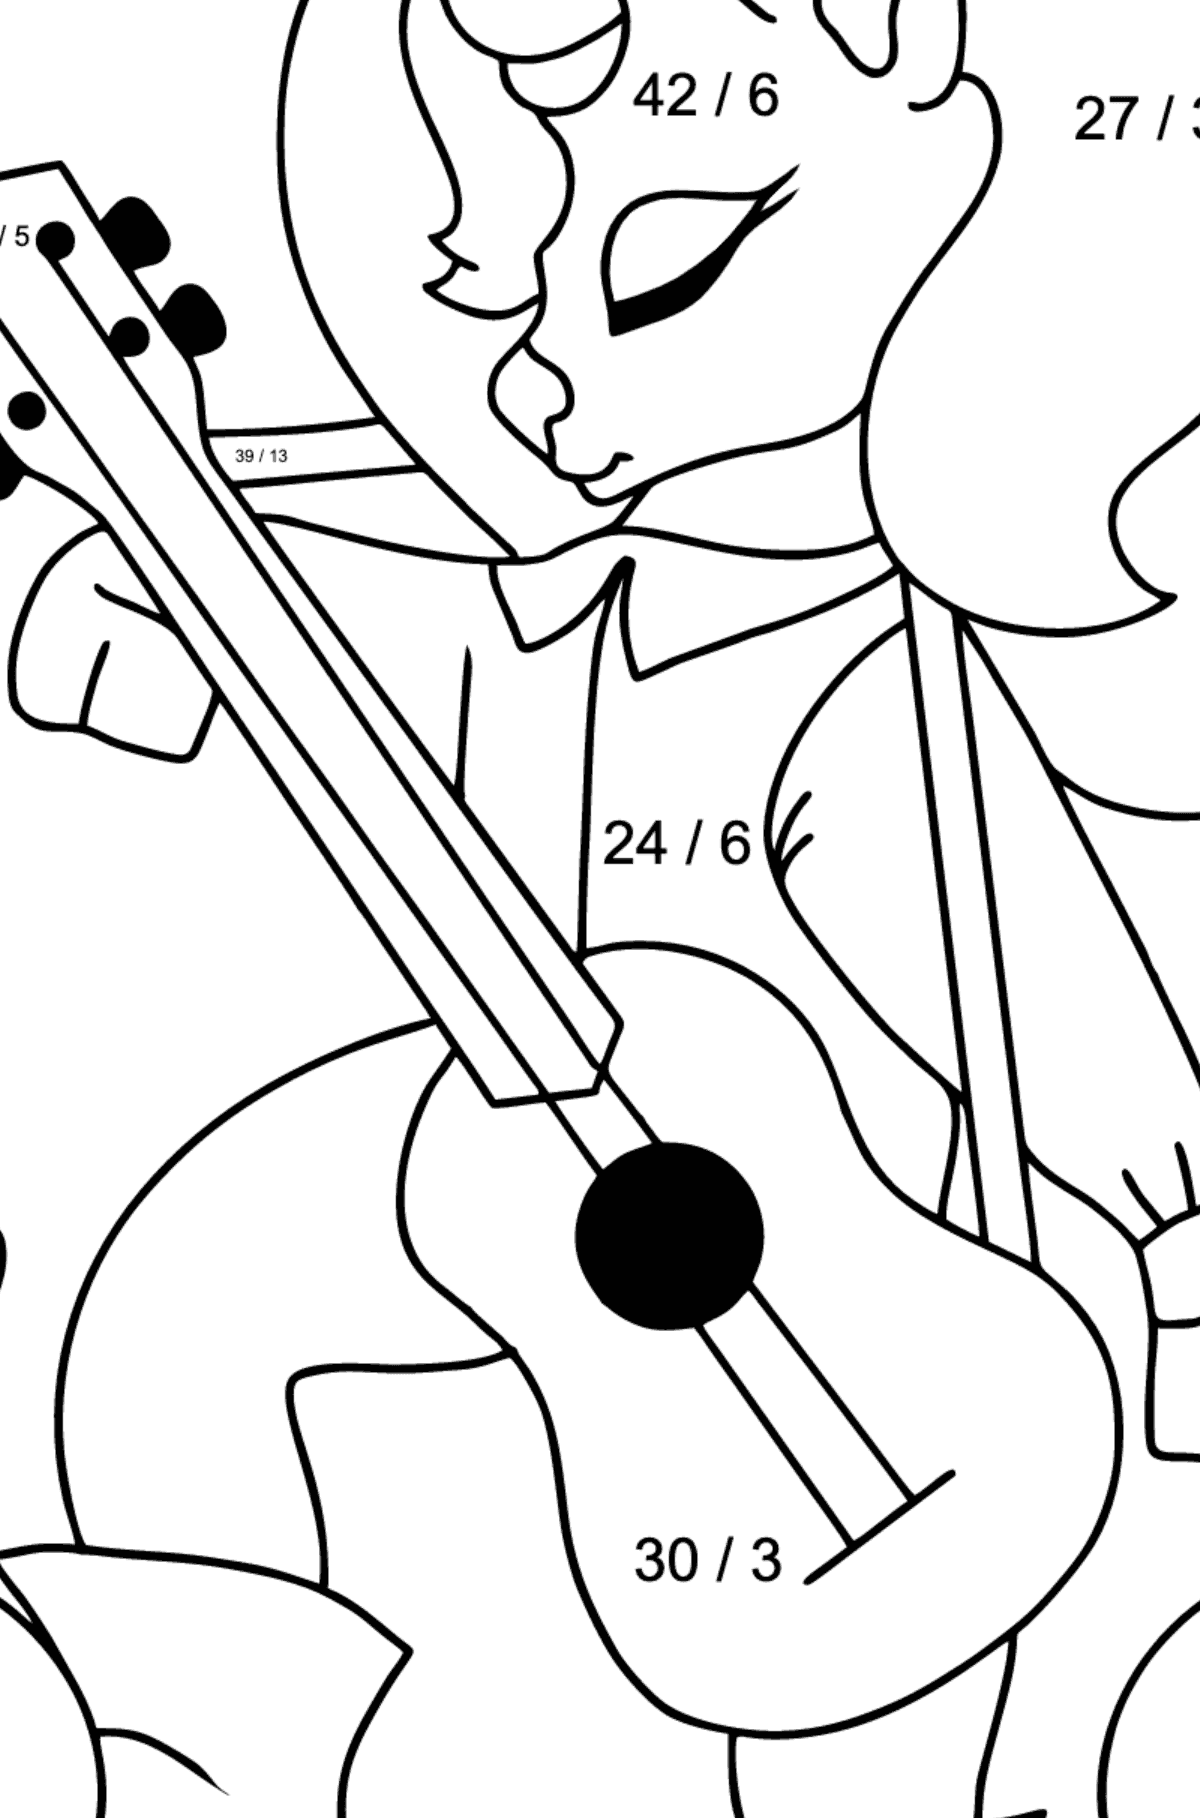 Simple Coloring Page - A Unicorn with a Guitar for Children  - Color by Number Division